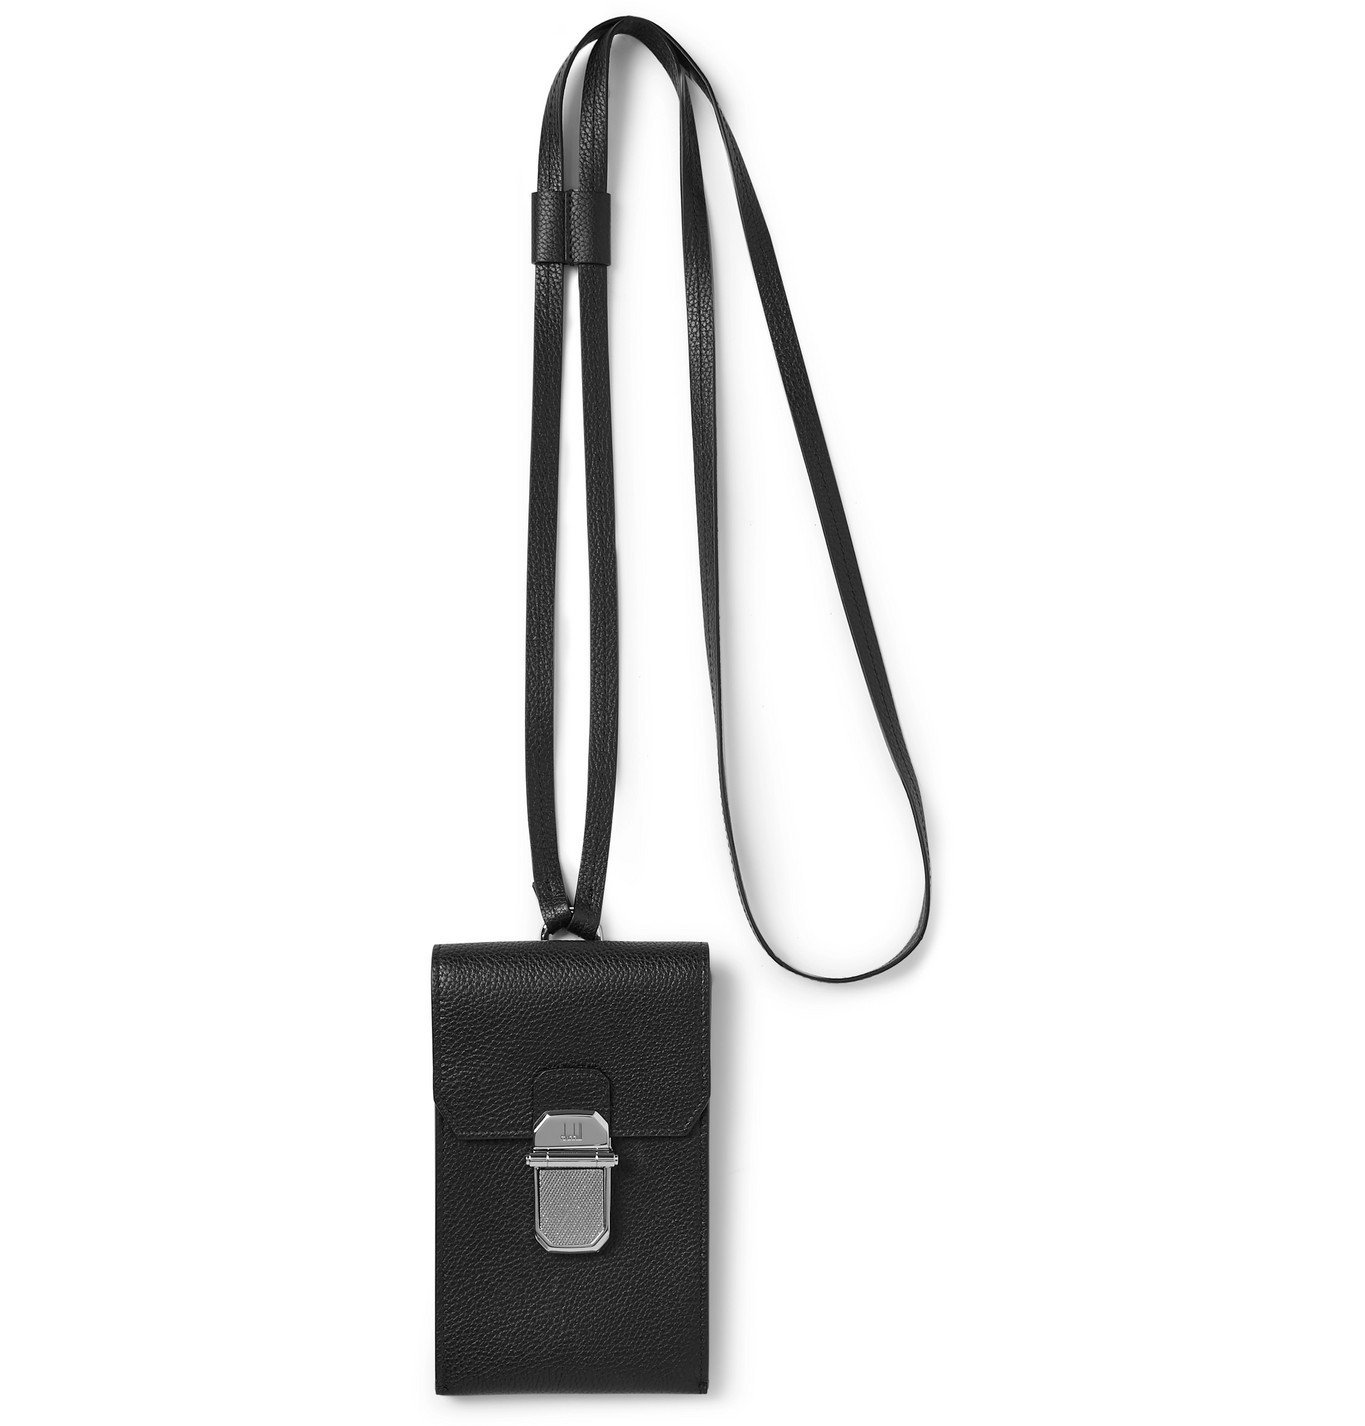 Dunhill - Full-Grain Leather Cardholder with Lanyard - Black